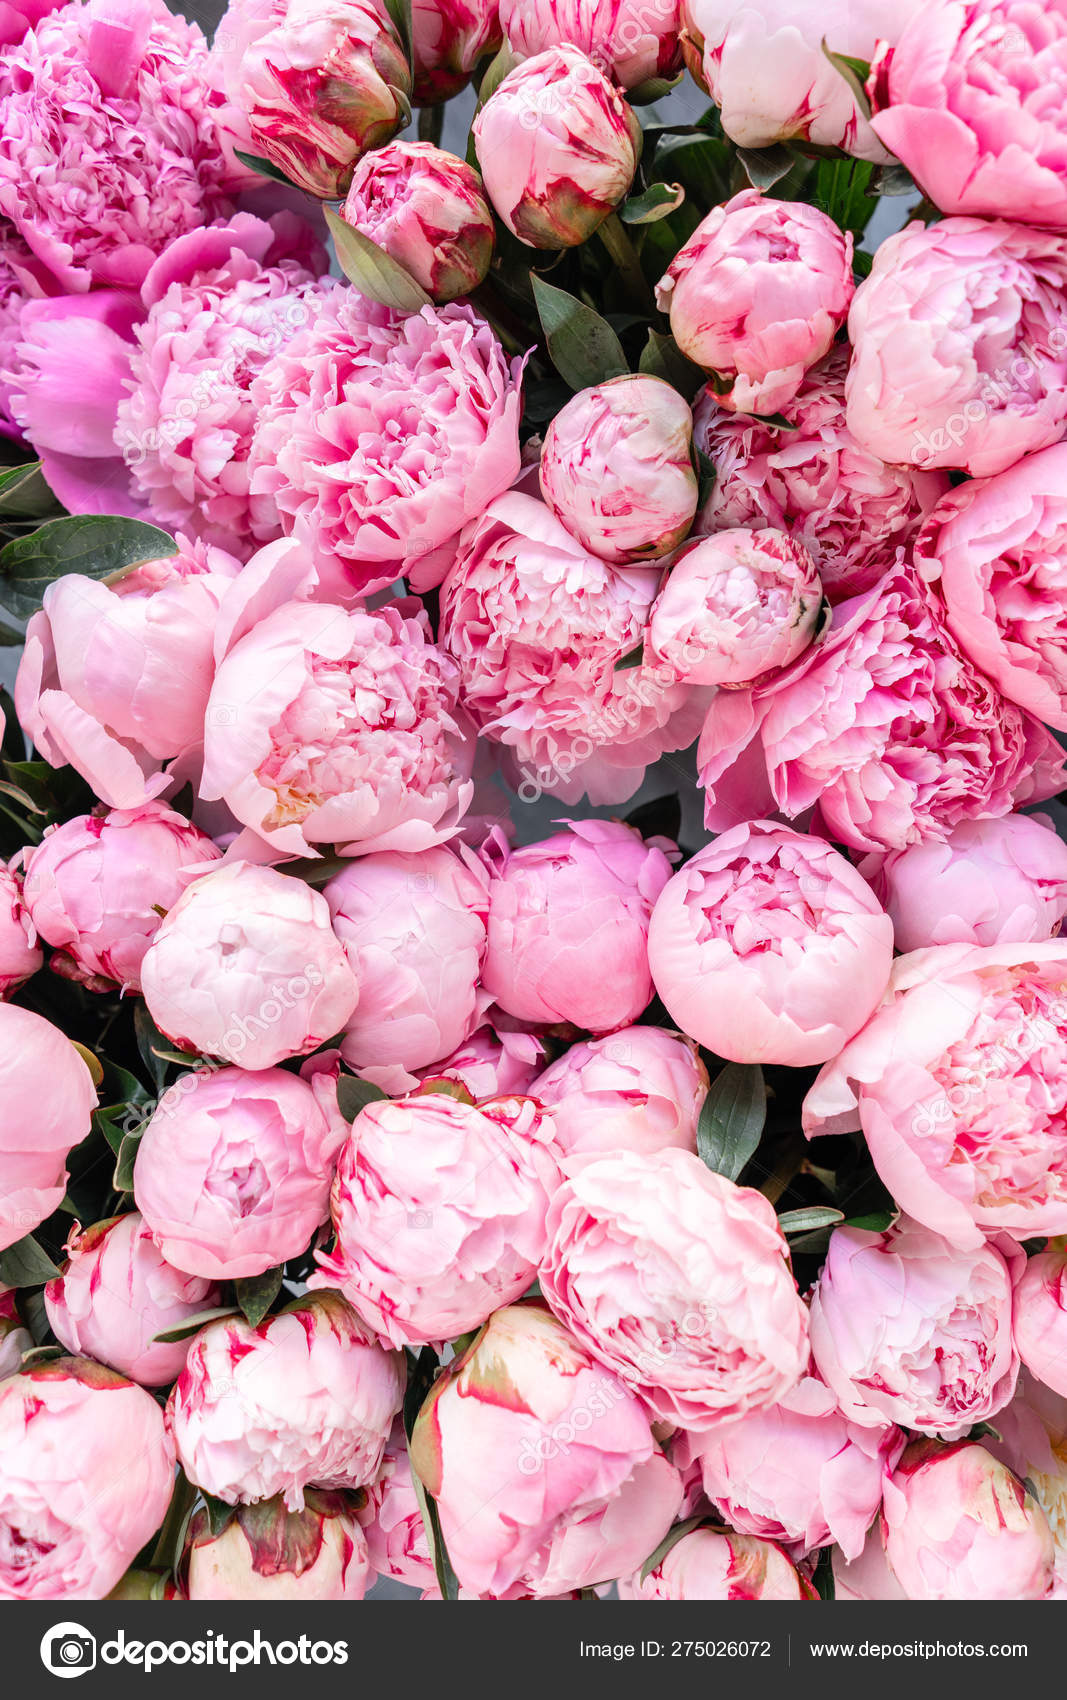 Floral Carpet Or Wallpaper Background Of Pink Peonies Morning Light In The Room Beautiful Peony Flower For Catalog Or Online Store Floral Shop And Delivery Concept Stock Photo C Malkovkosta 275026072